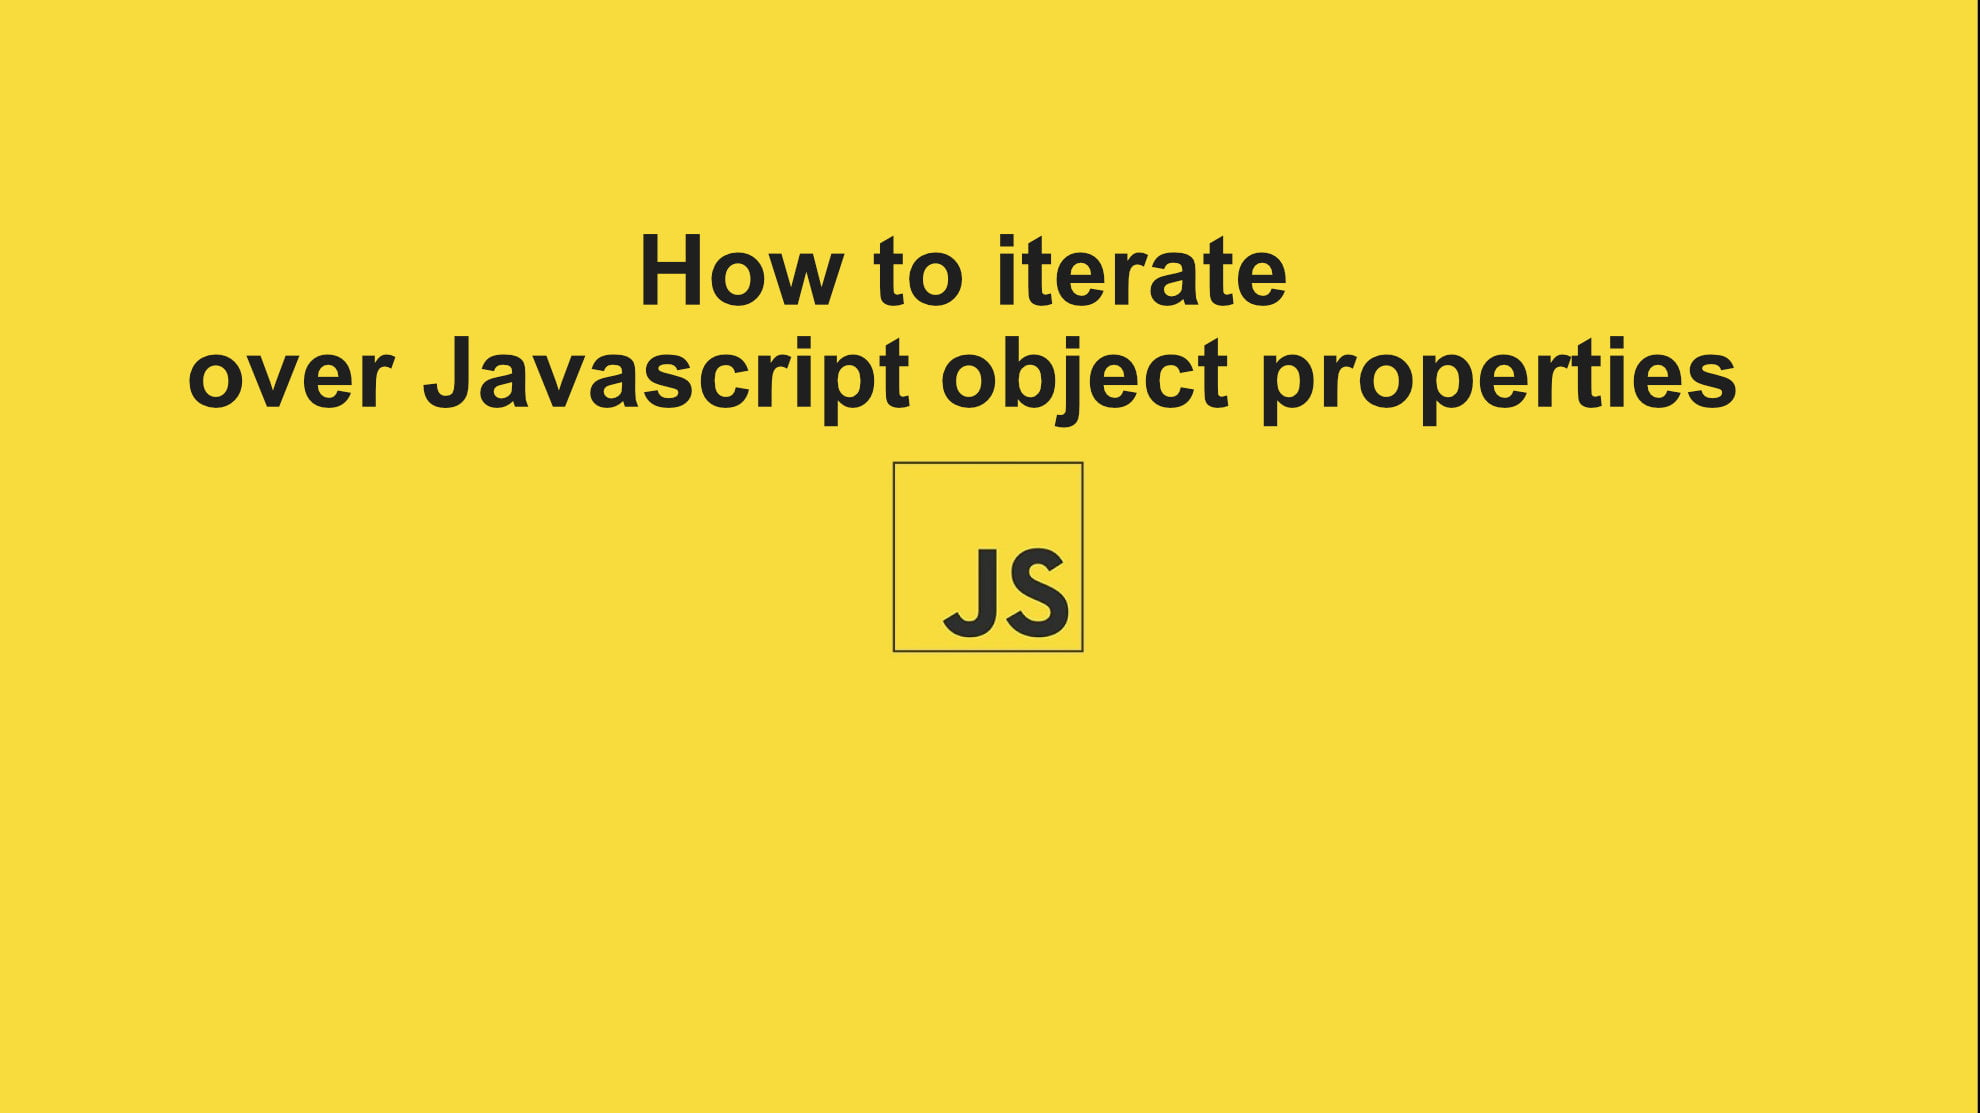 How to iterate over Javascript object properties